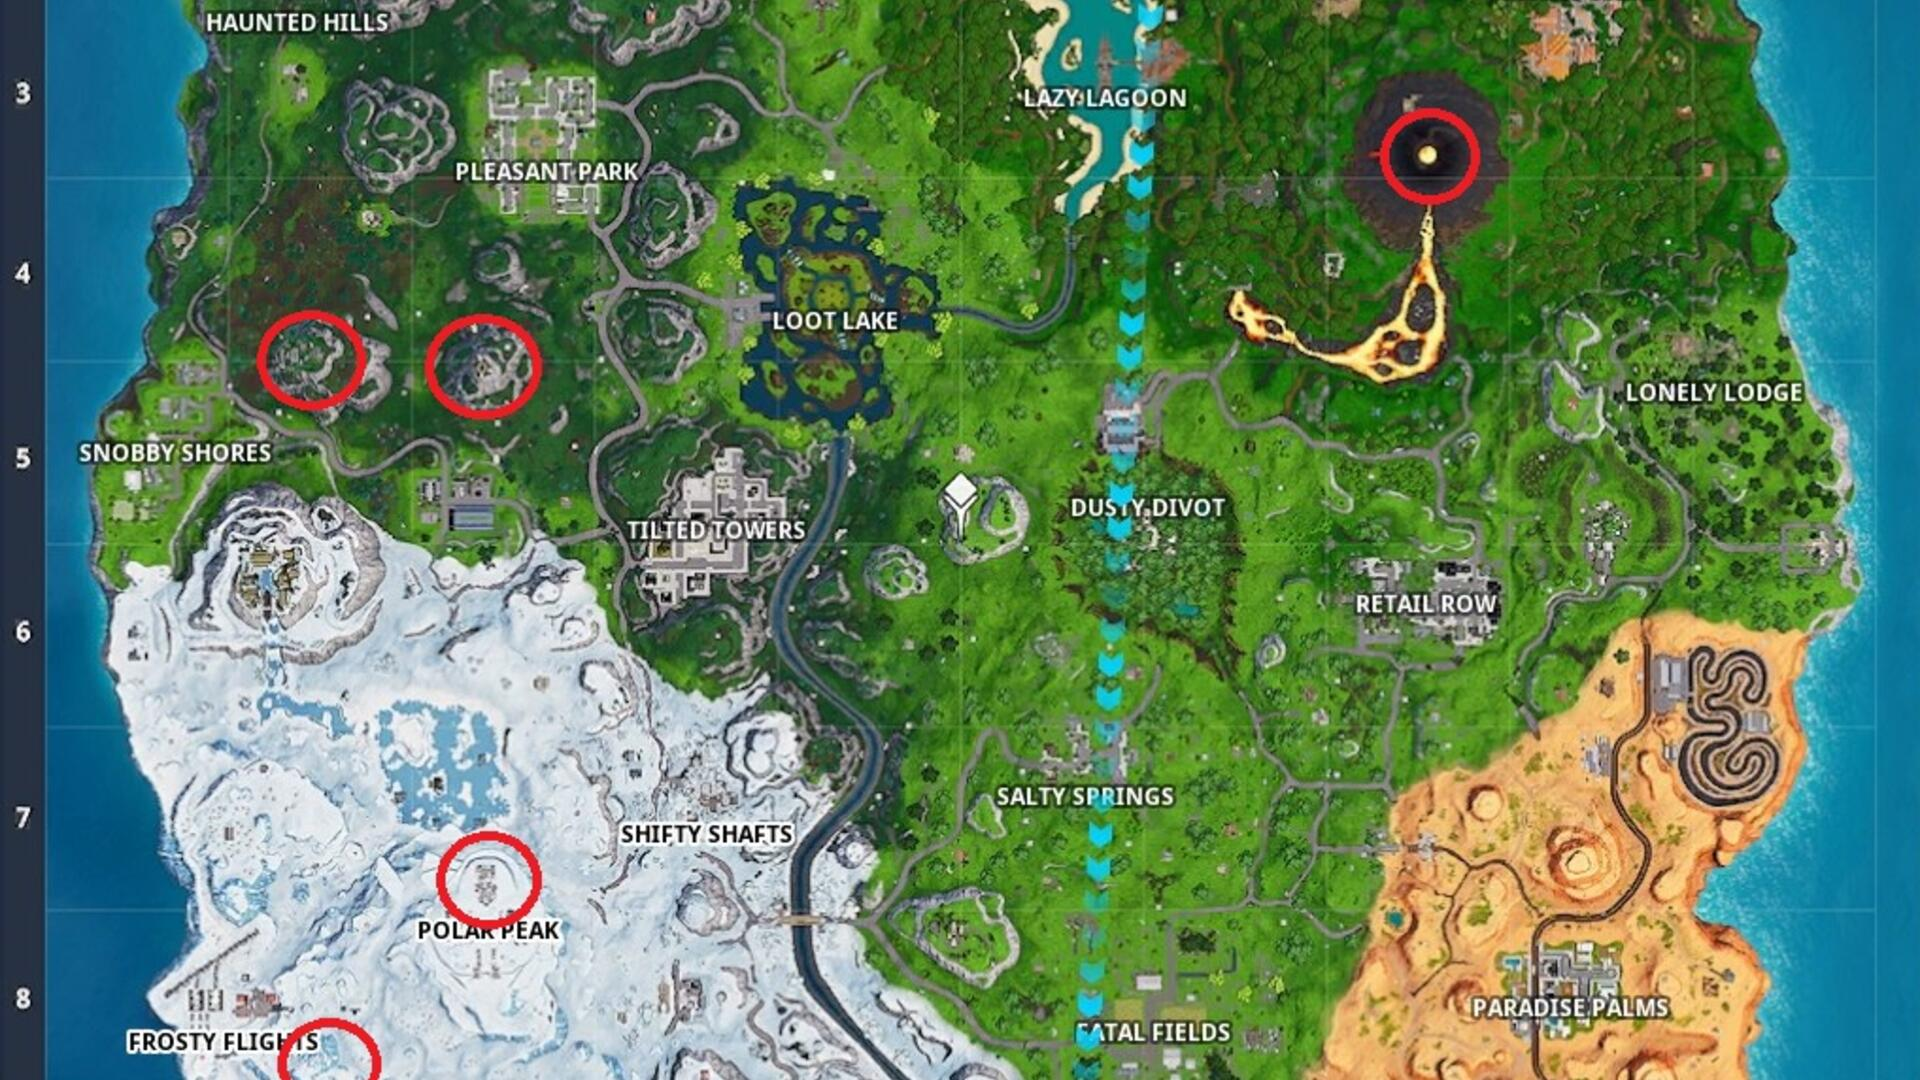 Fortnite 5 Highest Elevation Locations - How to Visit the 5 Highest Elevations in Fortnite